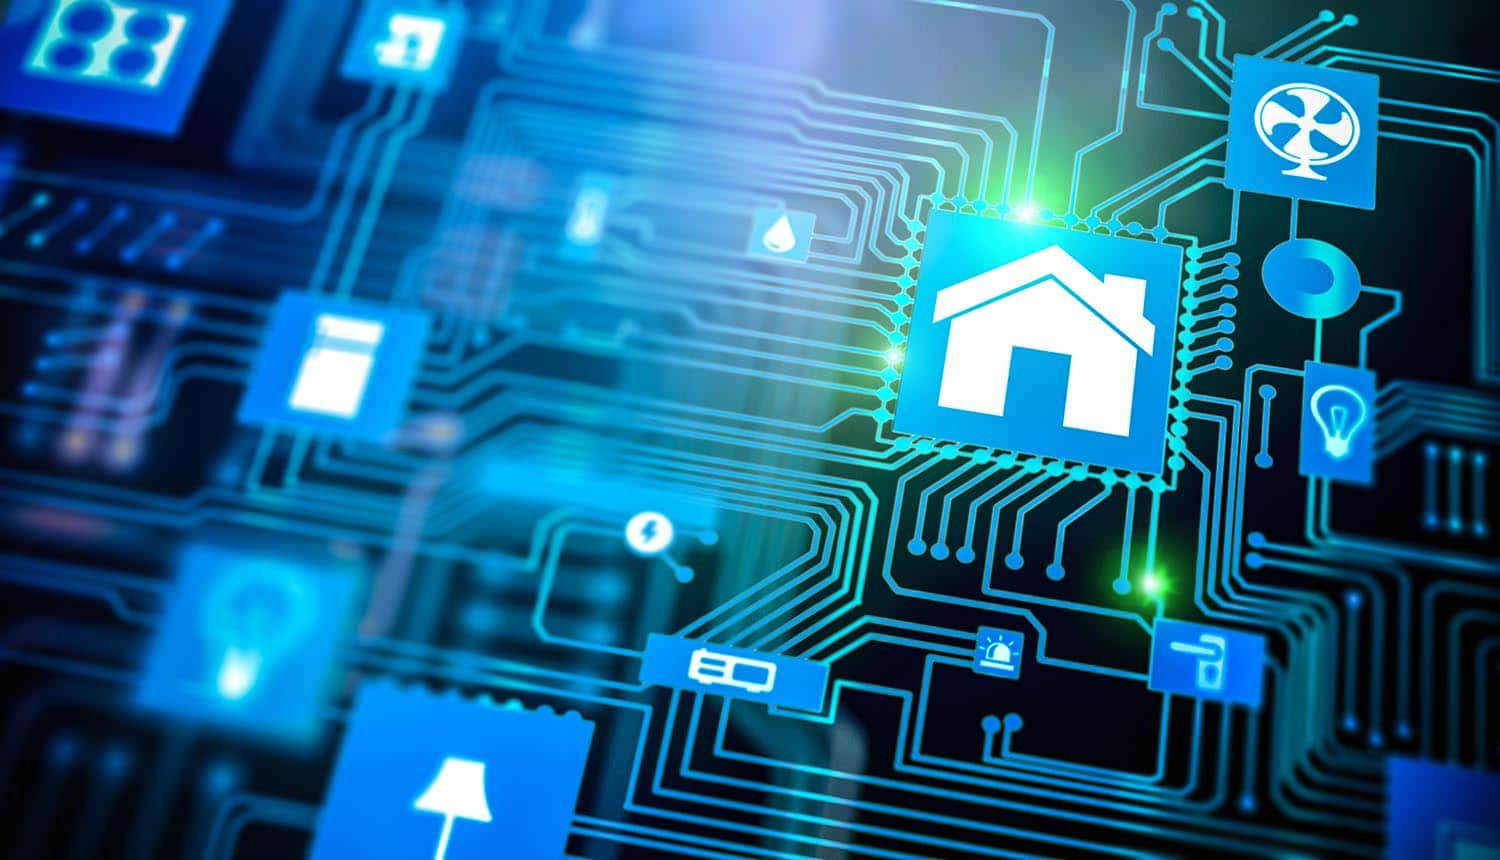 Smart home concept showing IoT security and privacy flaws in smart devices